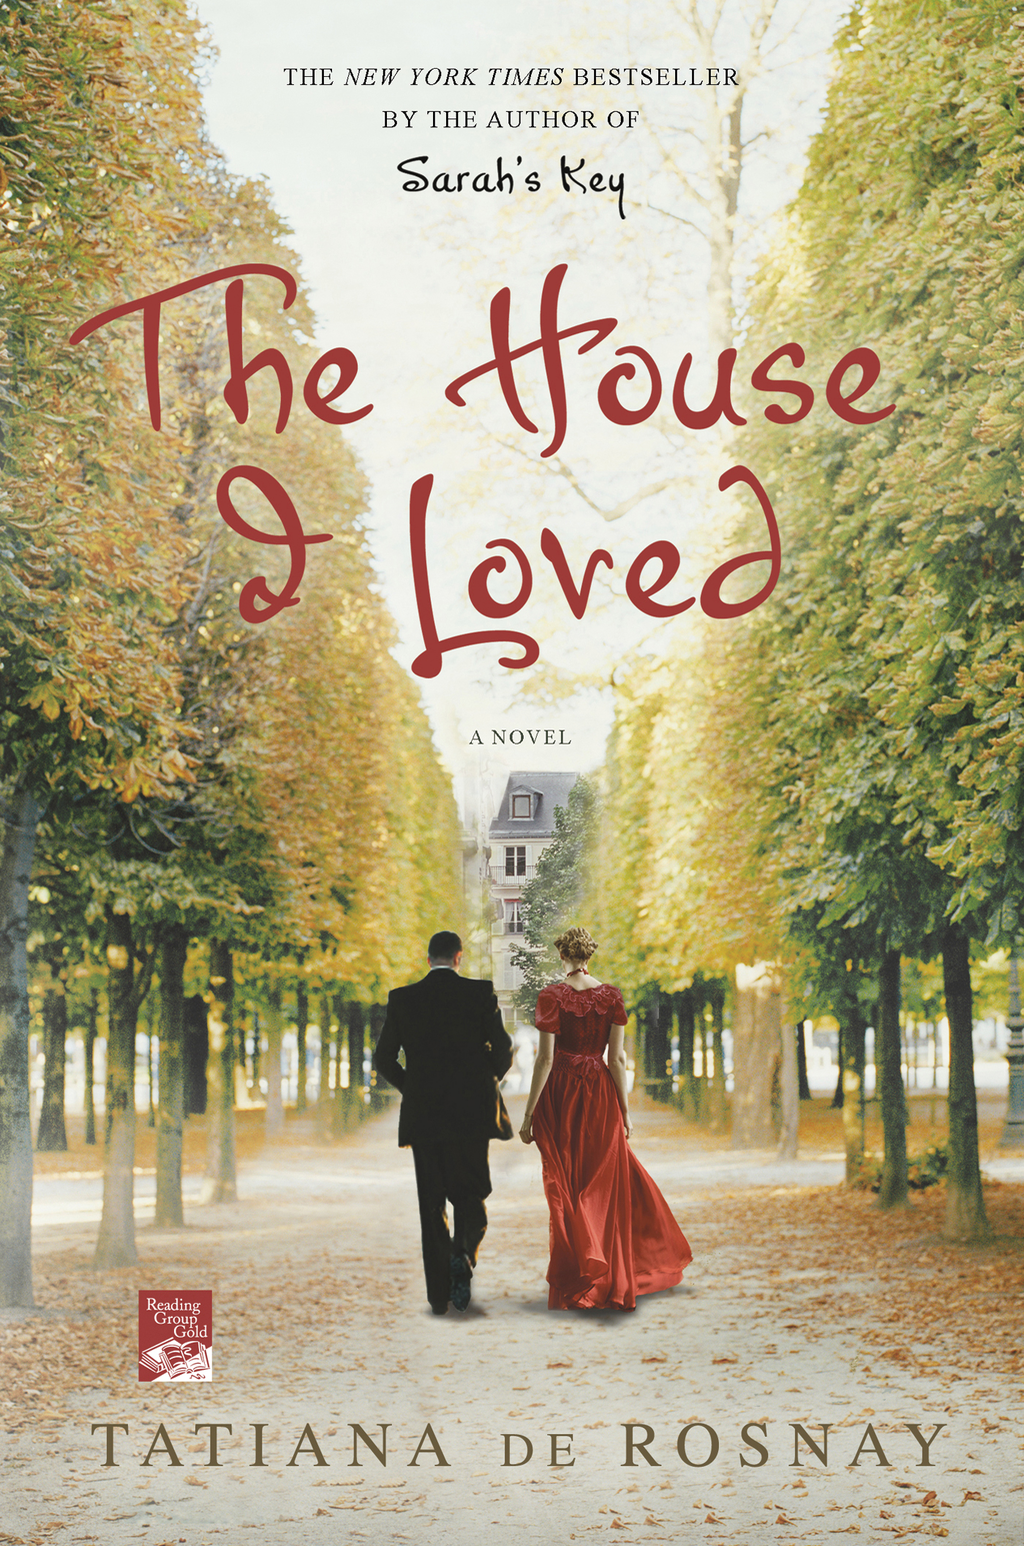 The House I Loved By: Tatiana de Rosnay